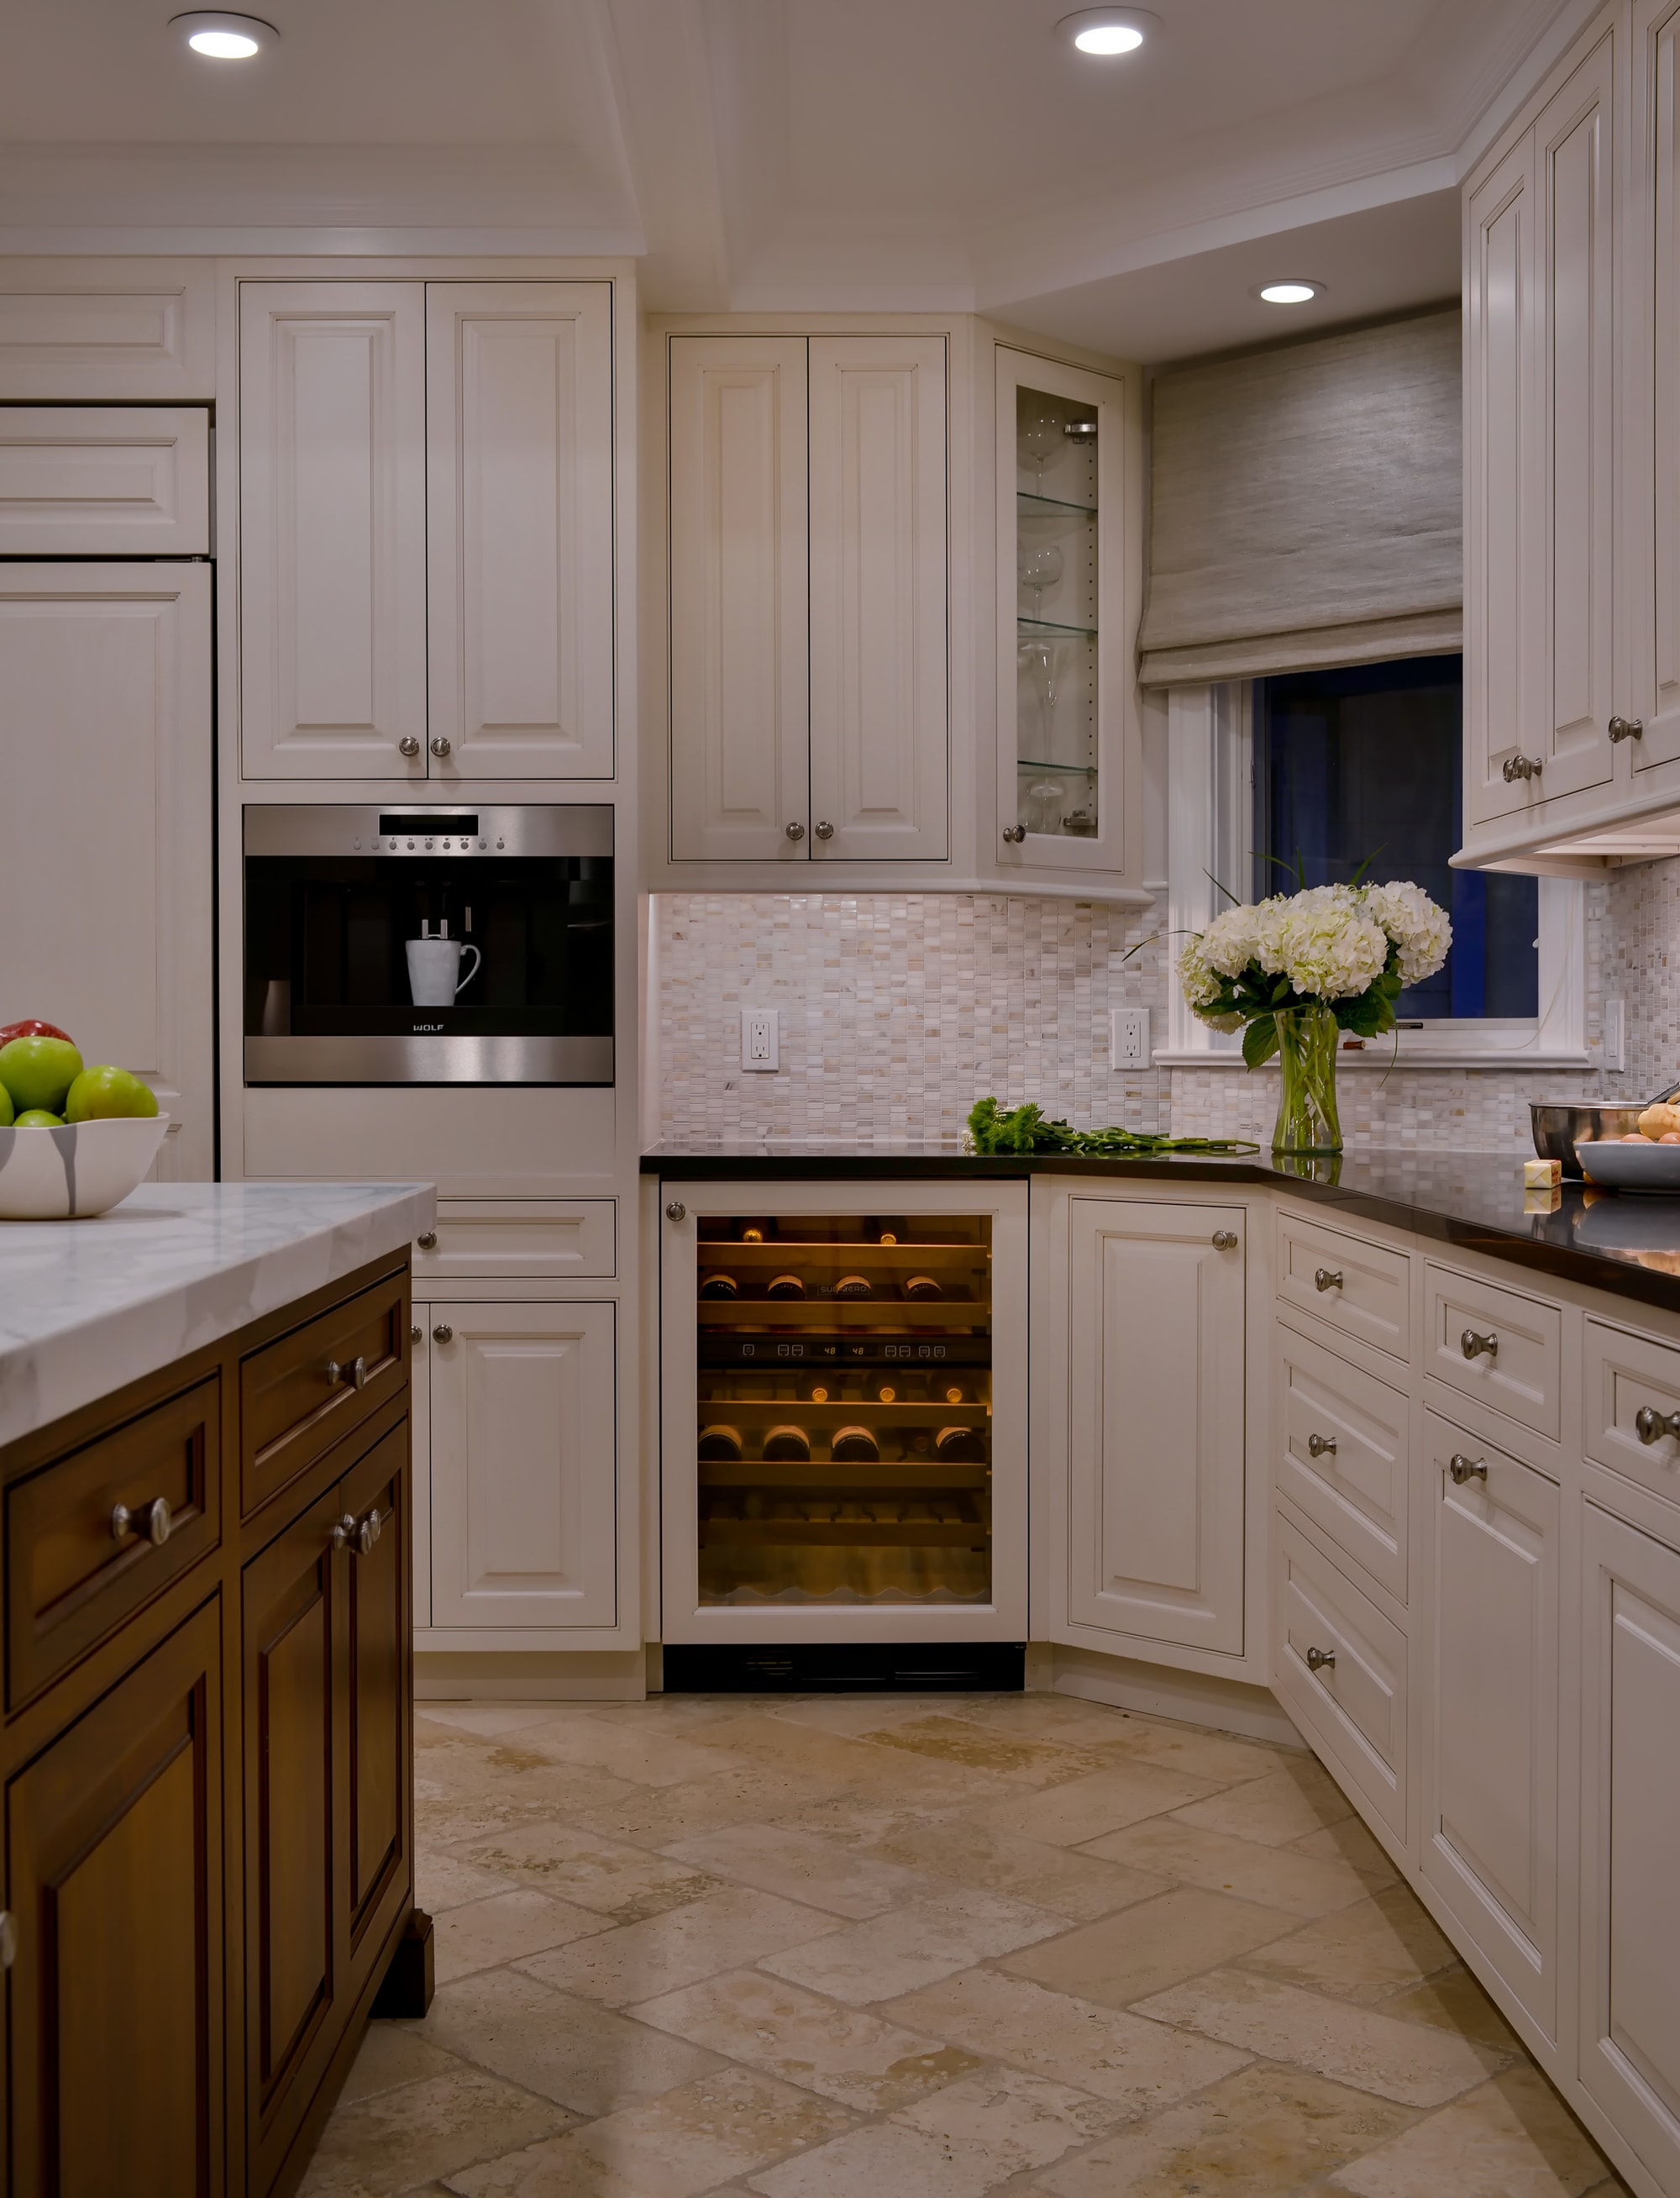 Transitional style kitchen with under counter wine cooler